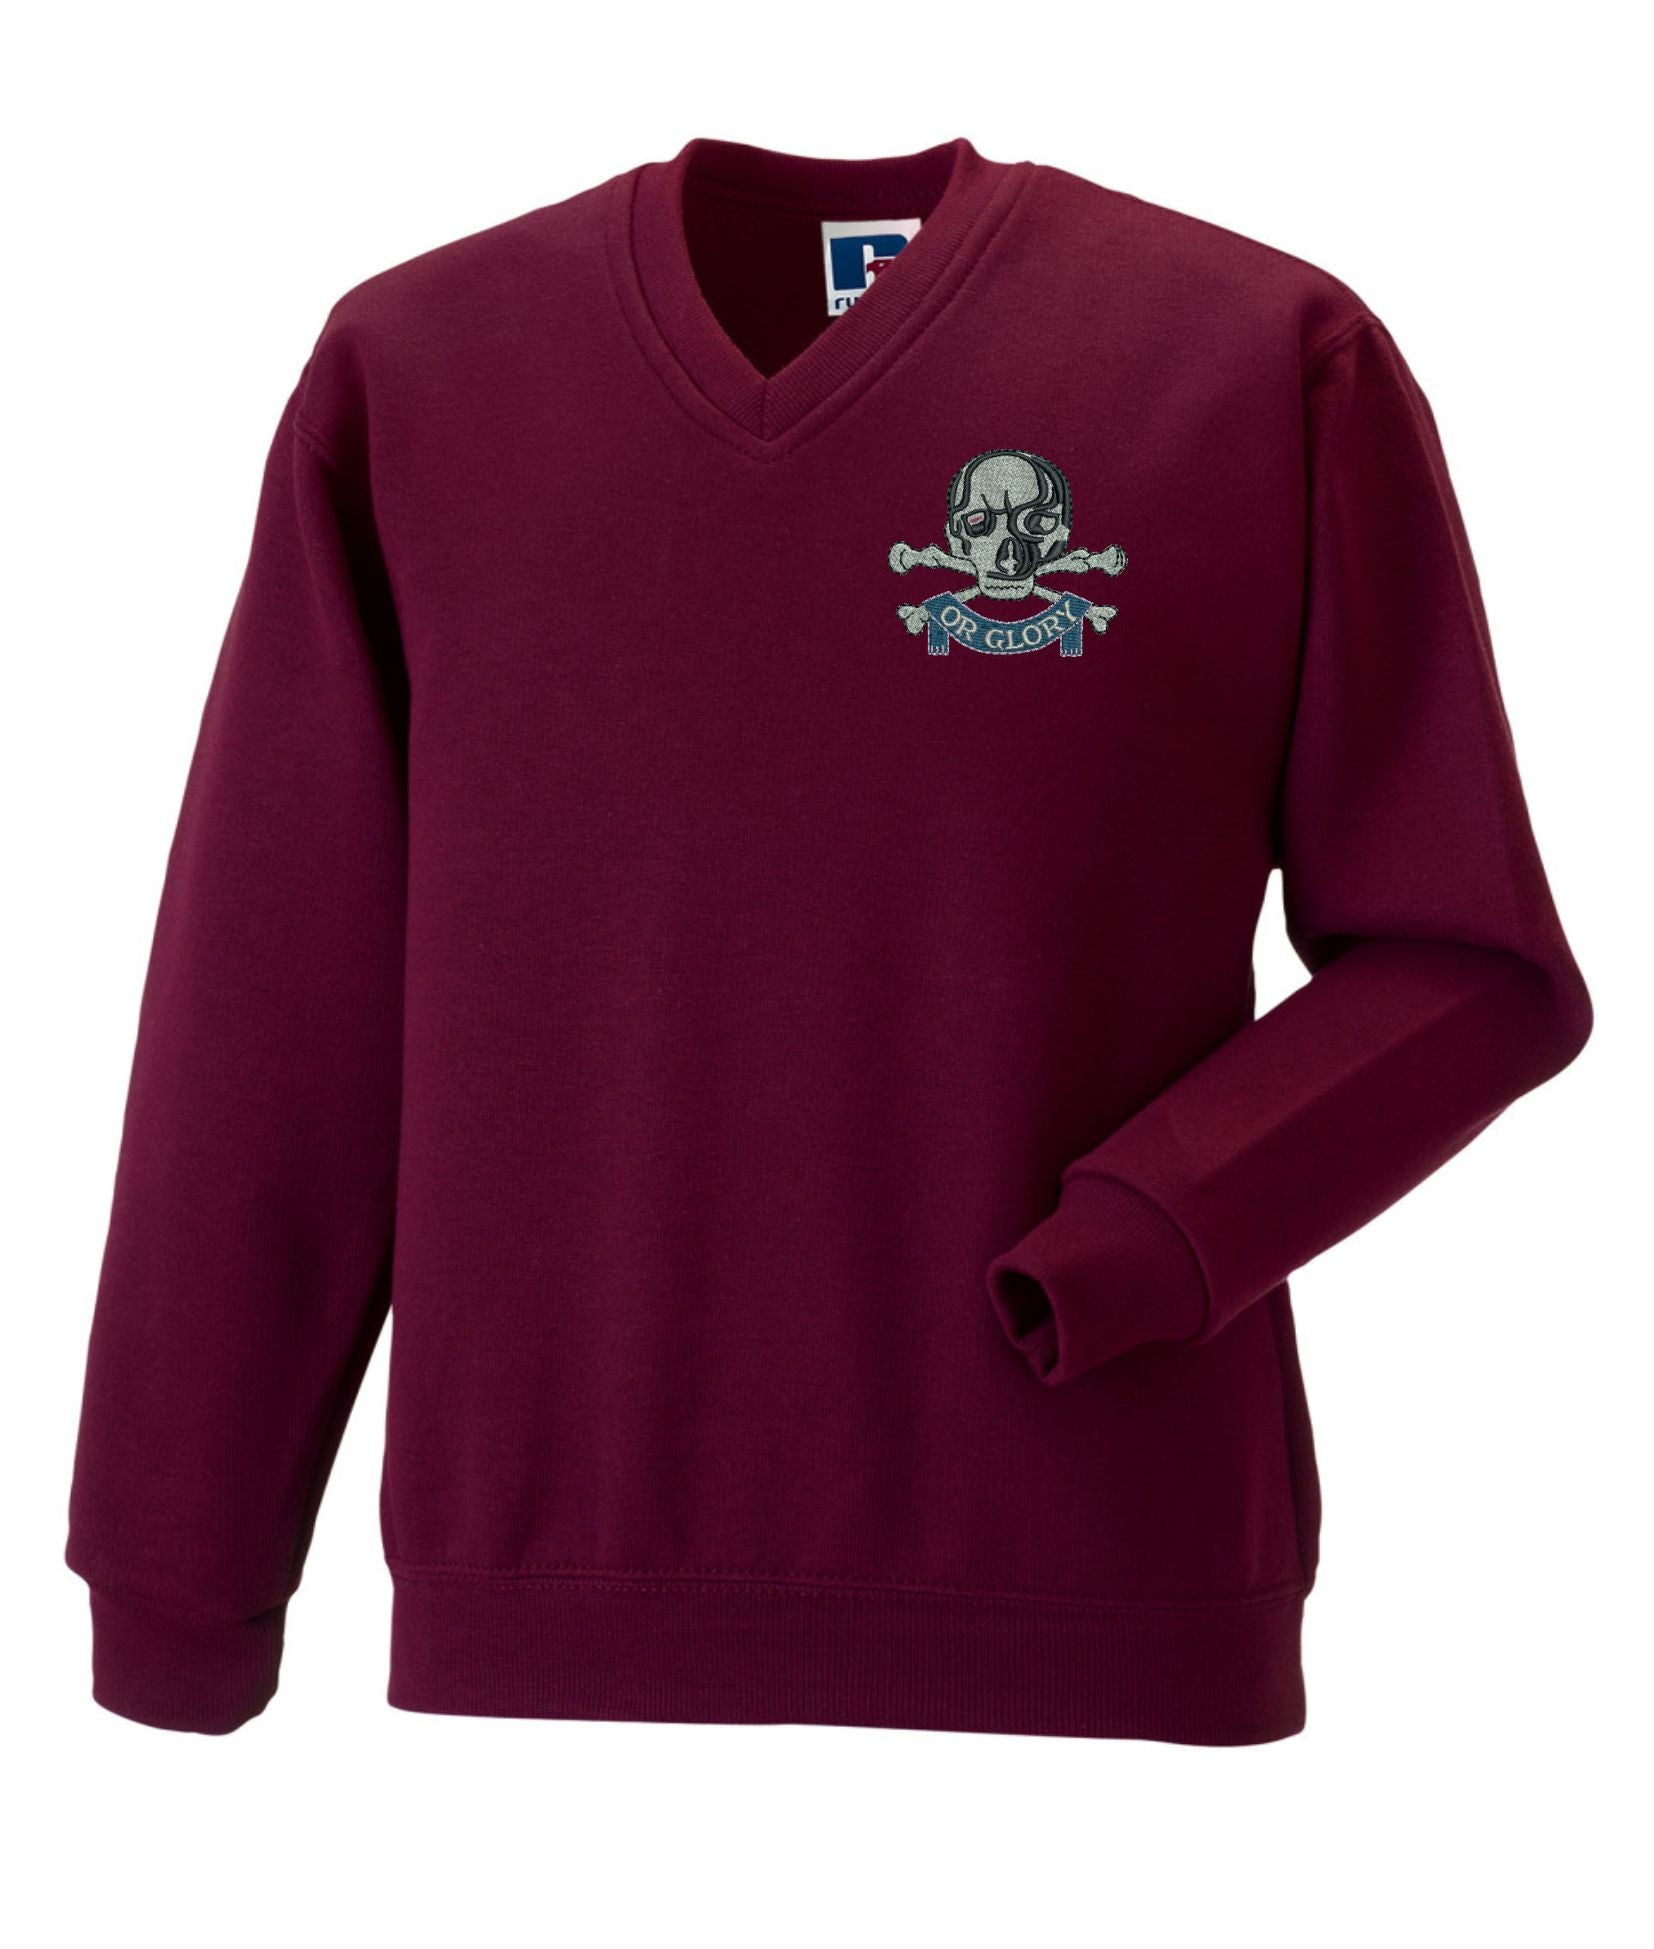 17th/21st Lancers V Neck Sweatshirt